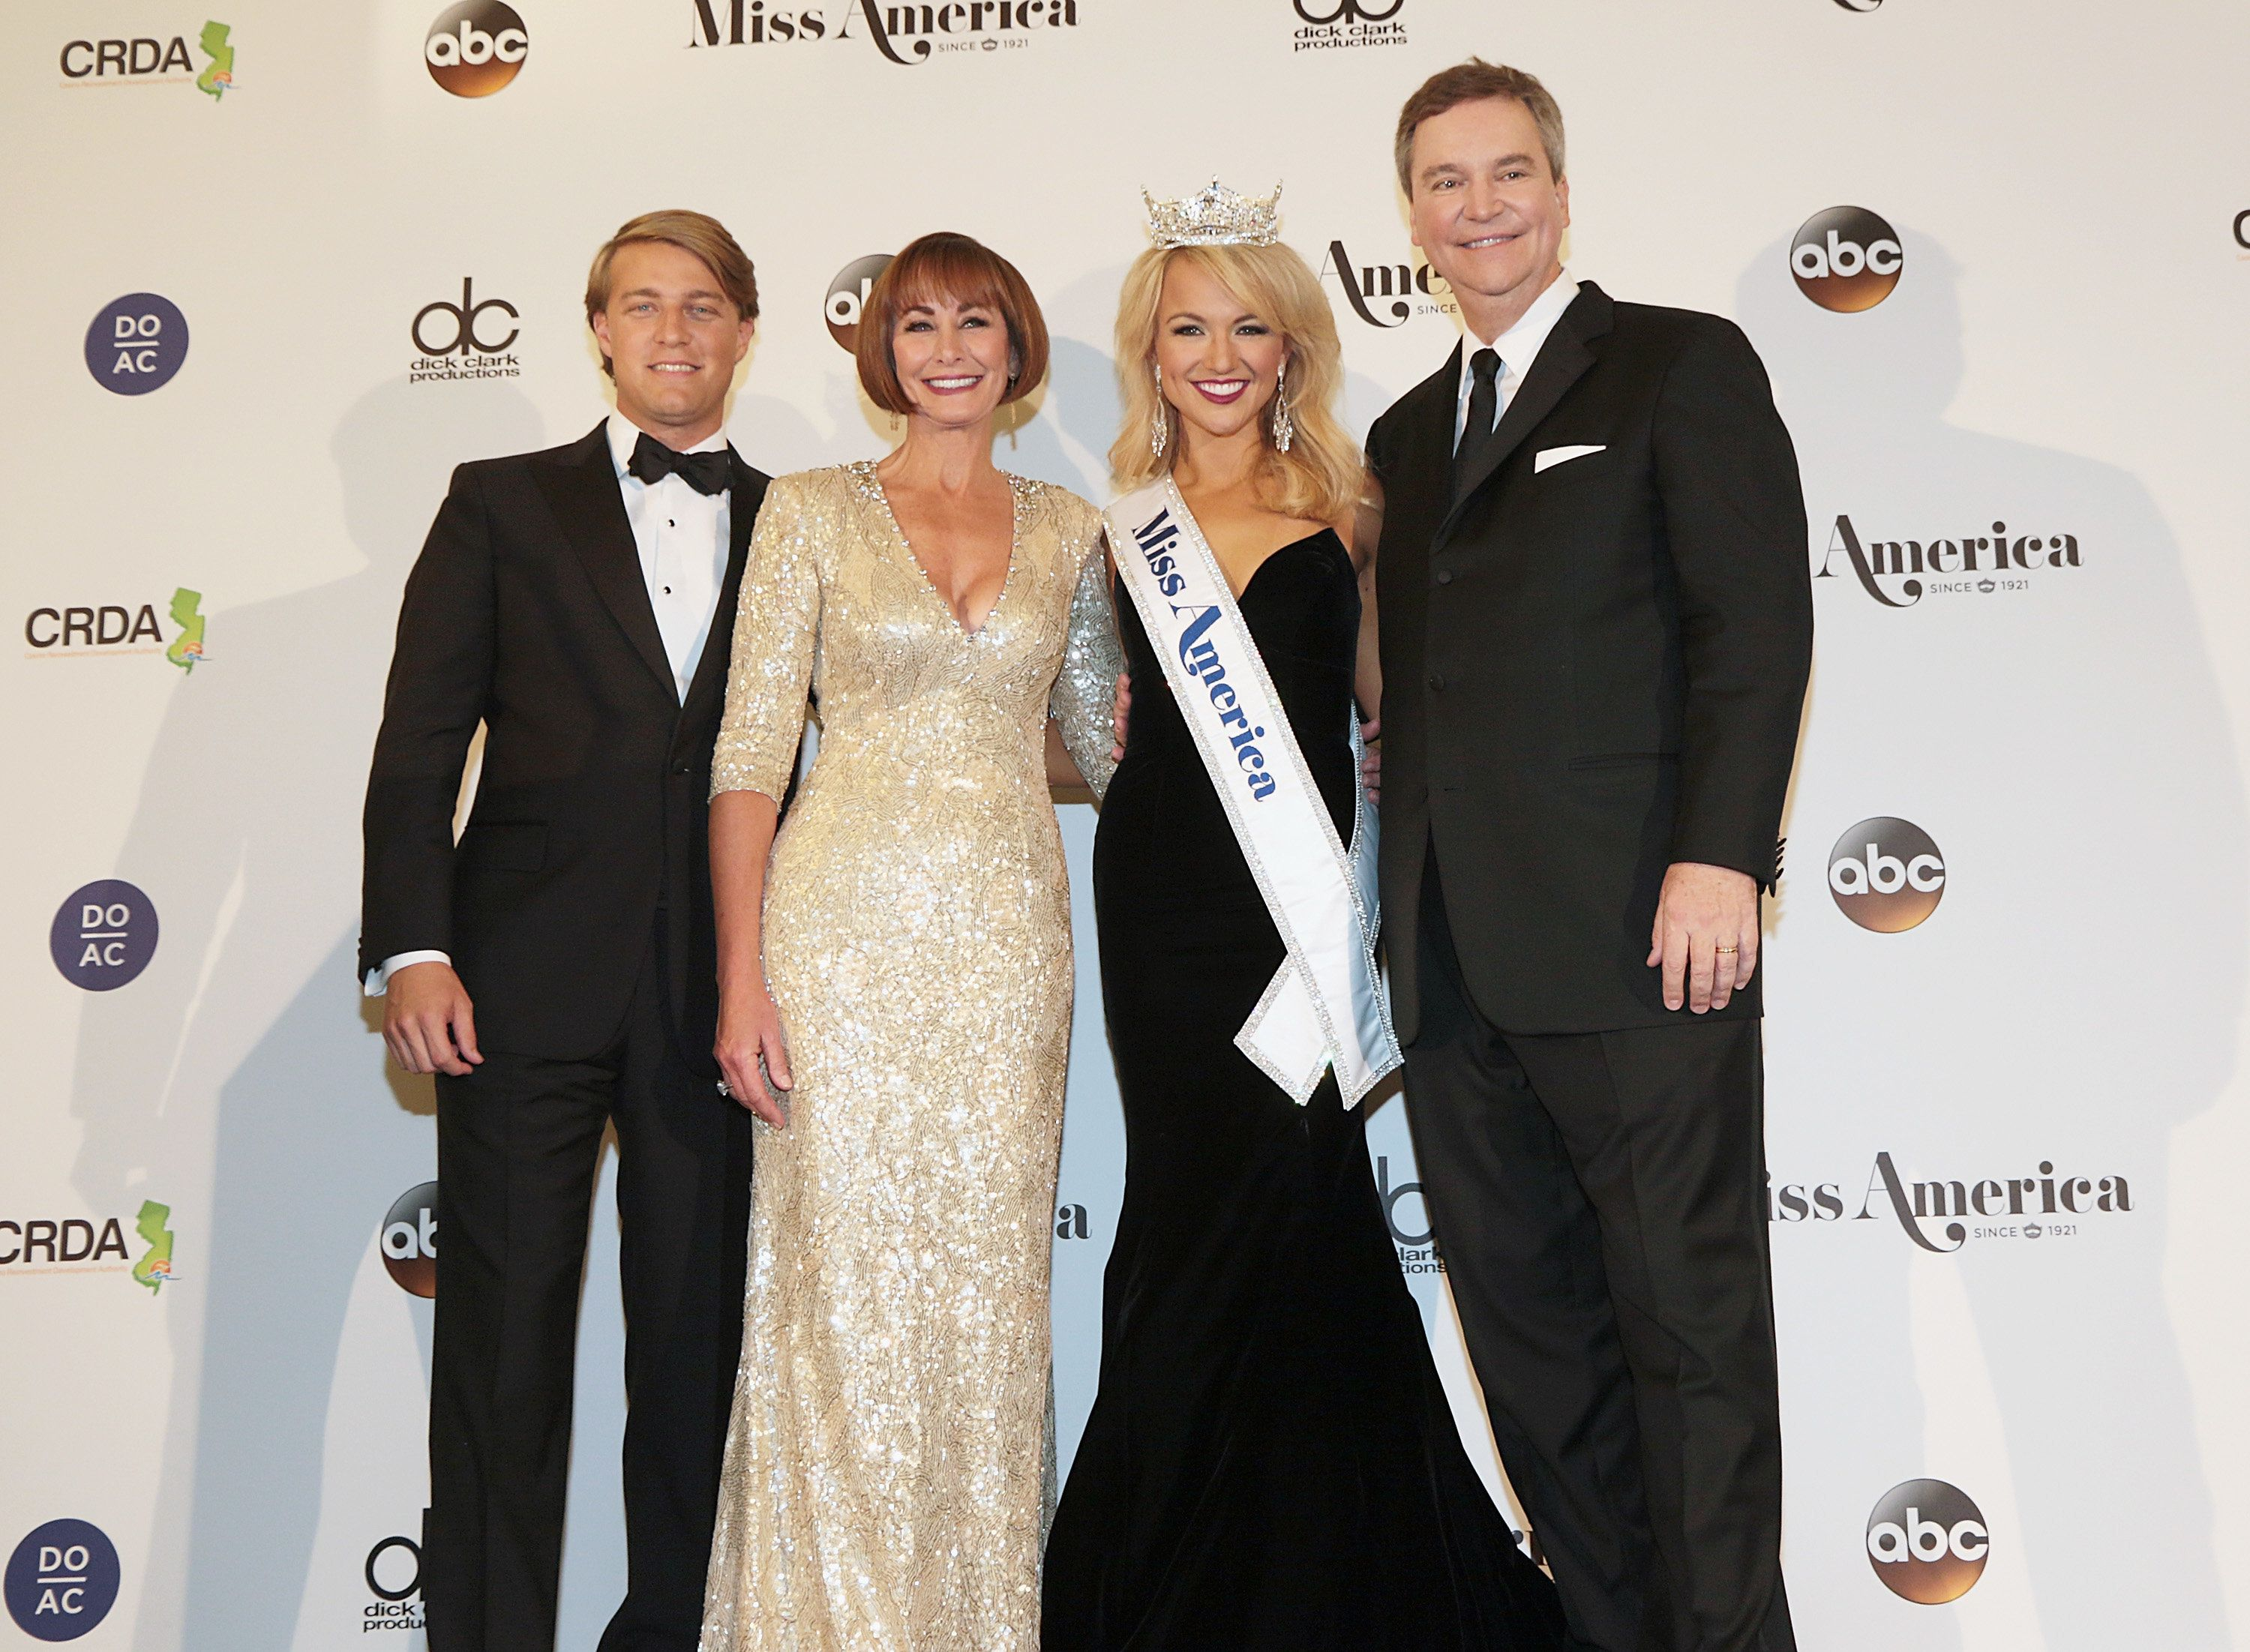 Josh Randle, Lynn Weidner, Savvy Shields and Sam Haskell appear during the 2017 Miss America Competition.